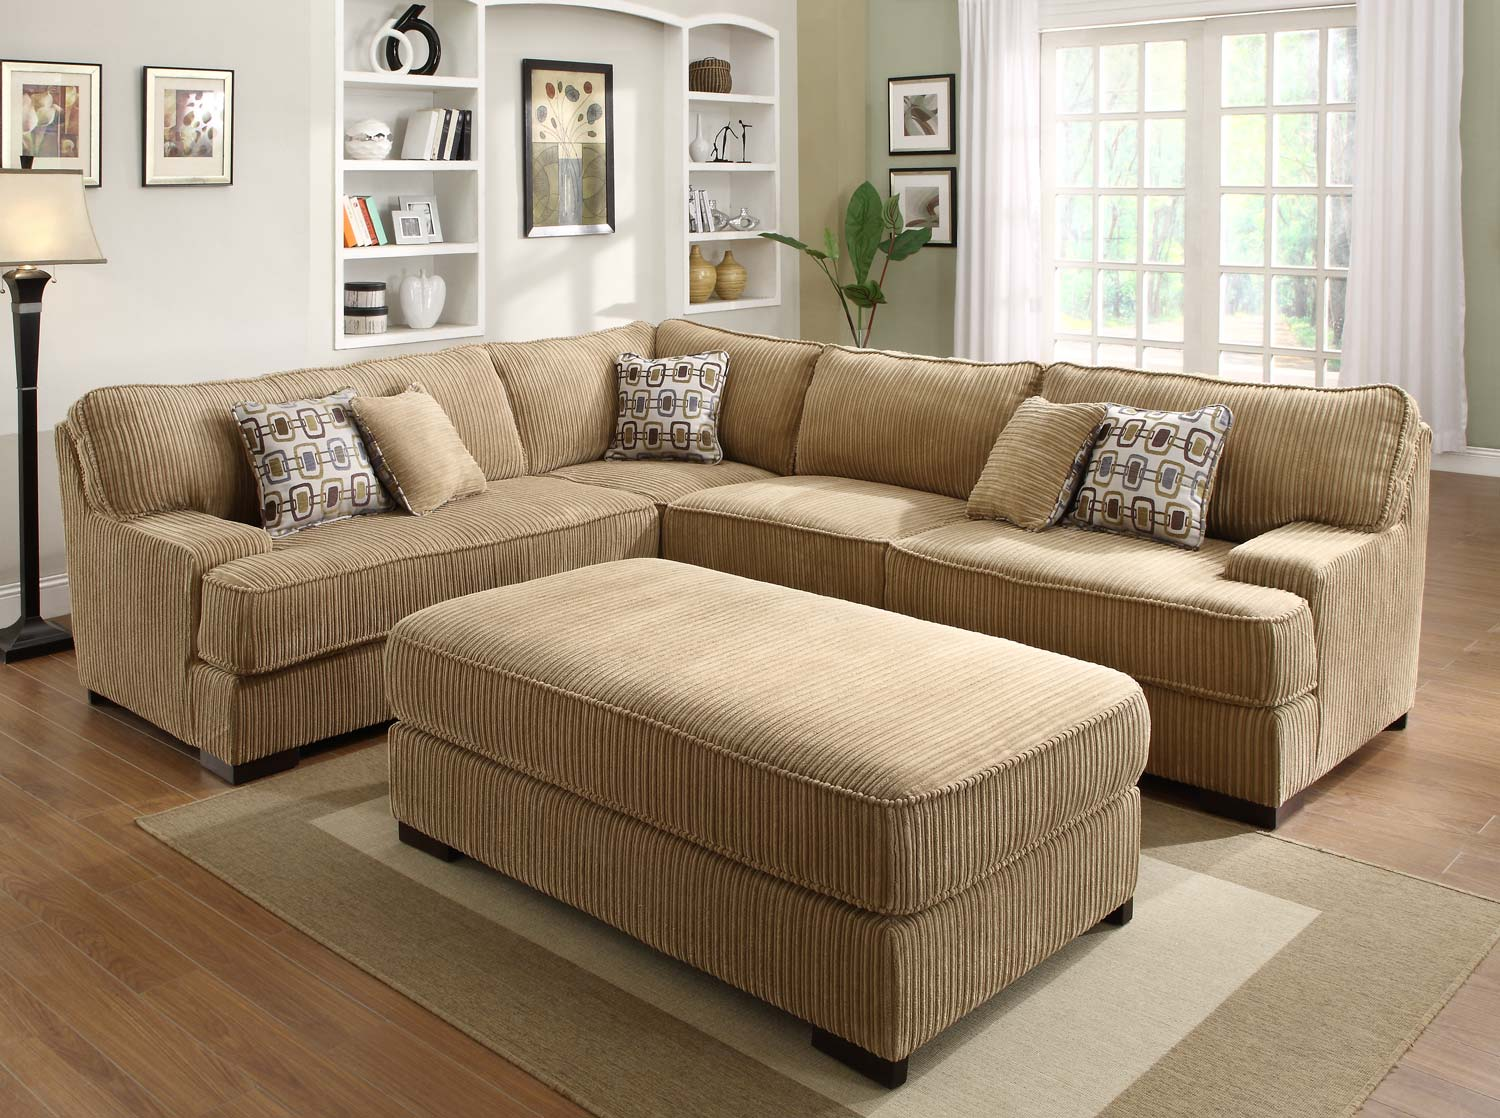 Homelegance Minnis Sectional Sofa Set - Brown U9759-SECT ...